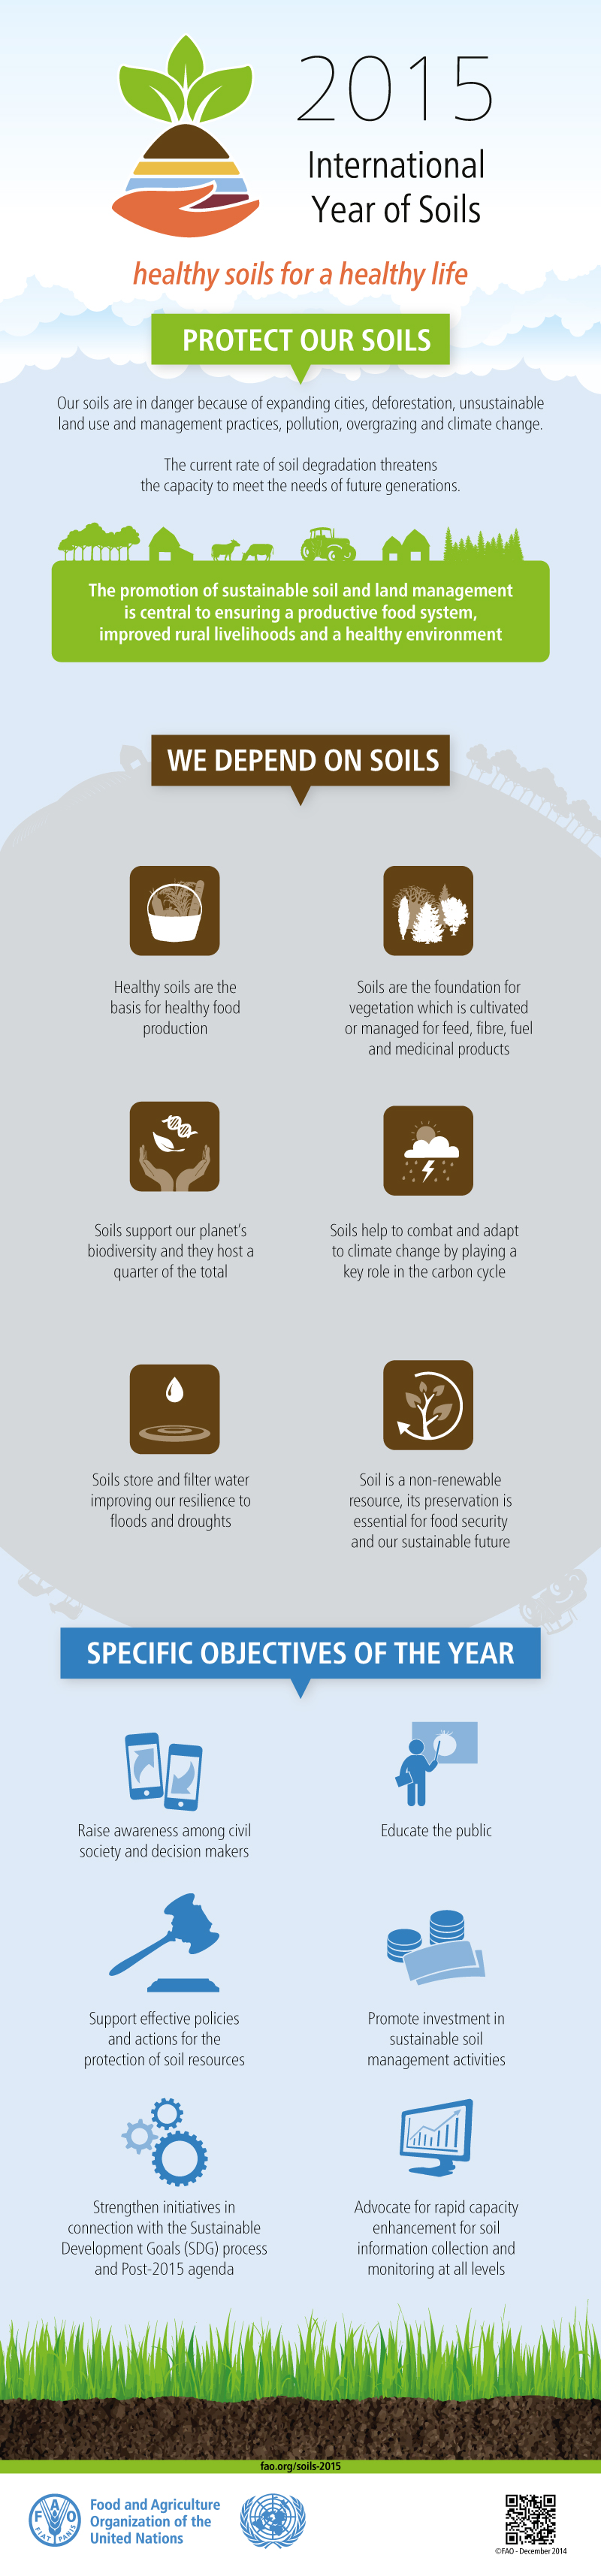 fao soil infographic